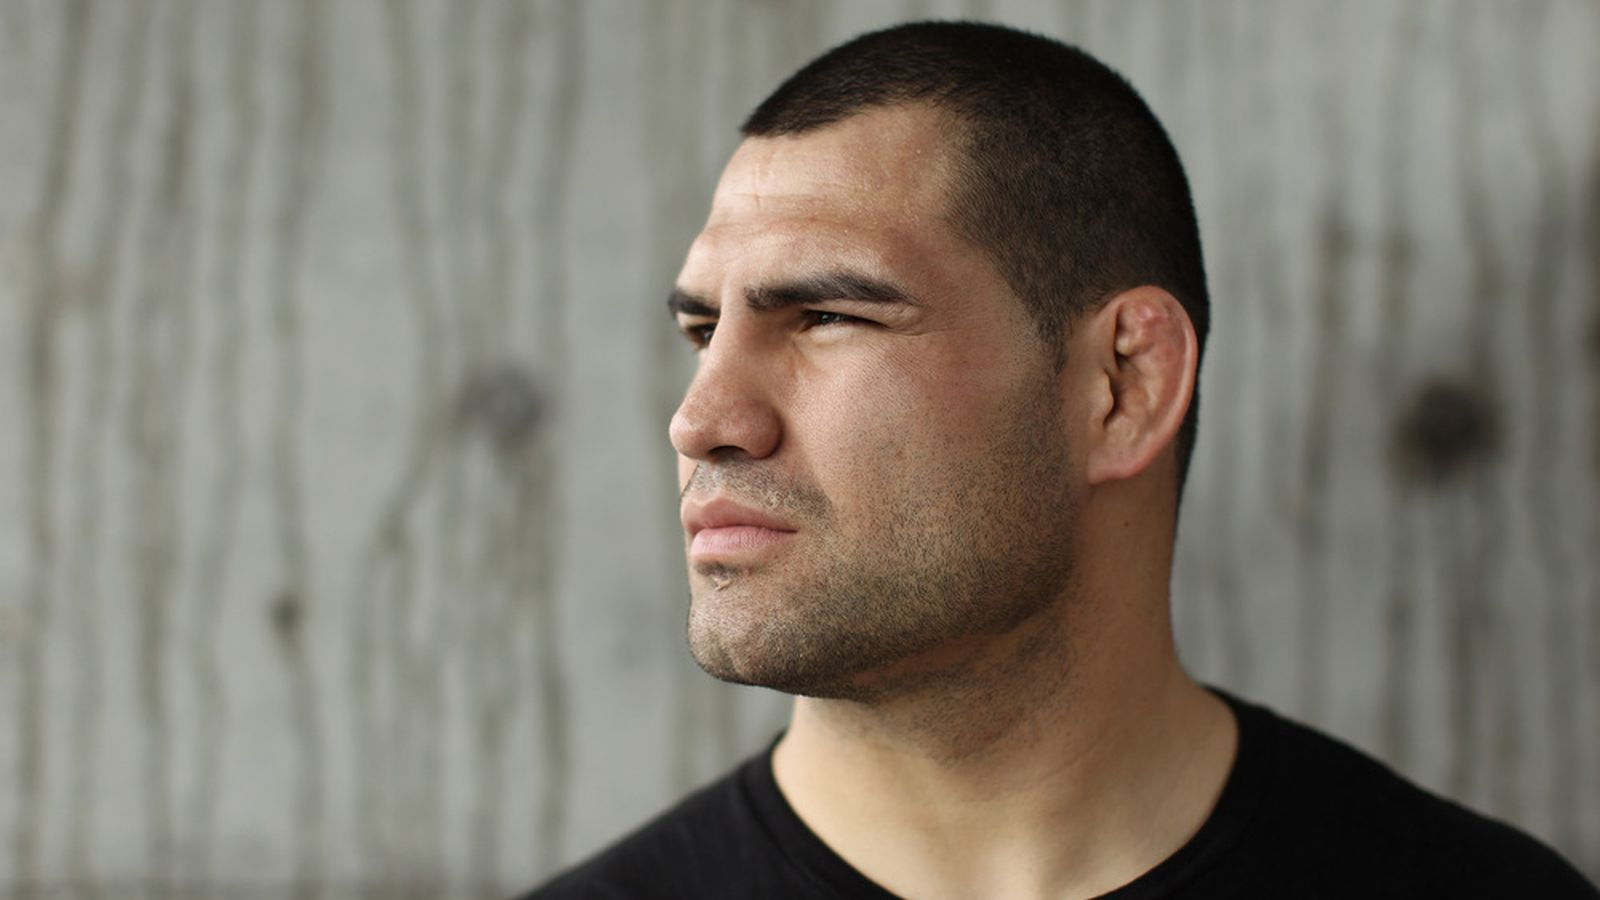 9761k Followers 700 Following 475 Posts See Instagram photos and videos from Cain Velasquez officialcainvelasquez